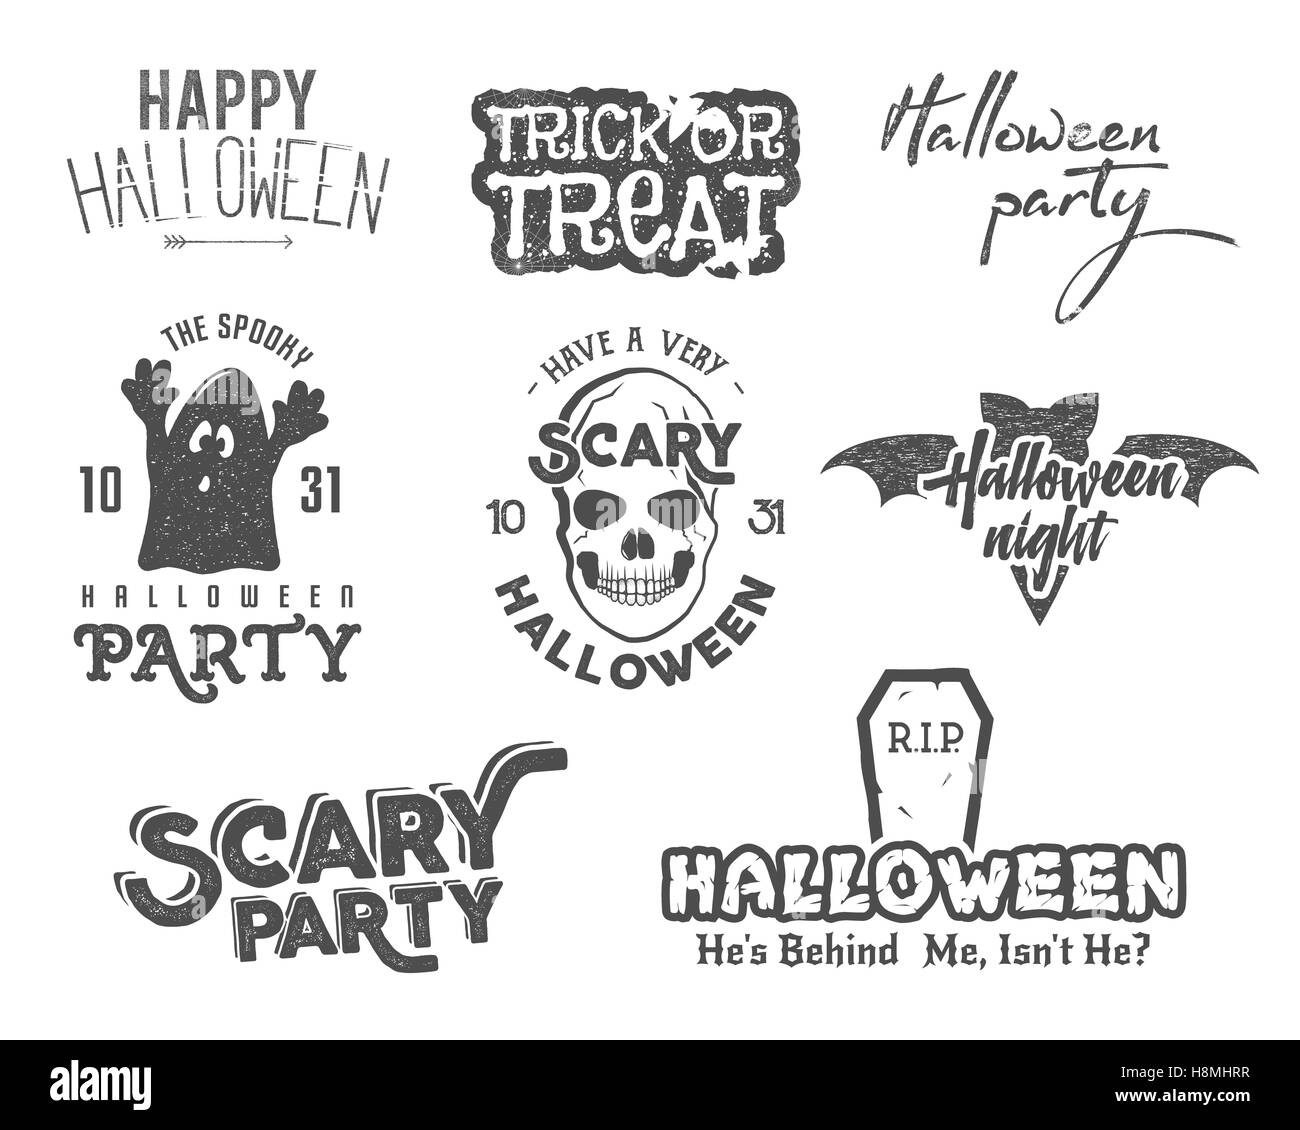 Halloween 2016 party vintage labels, tee designs with scary ...